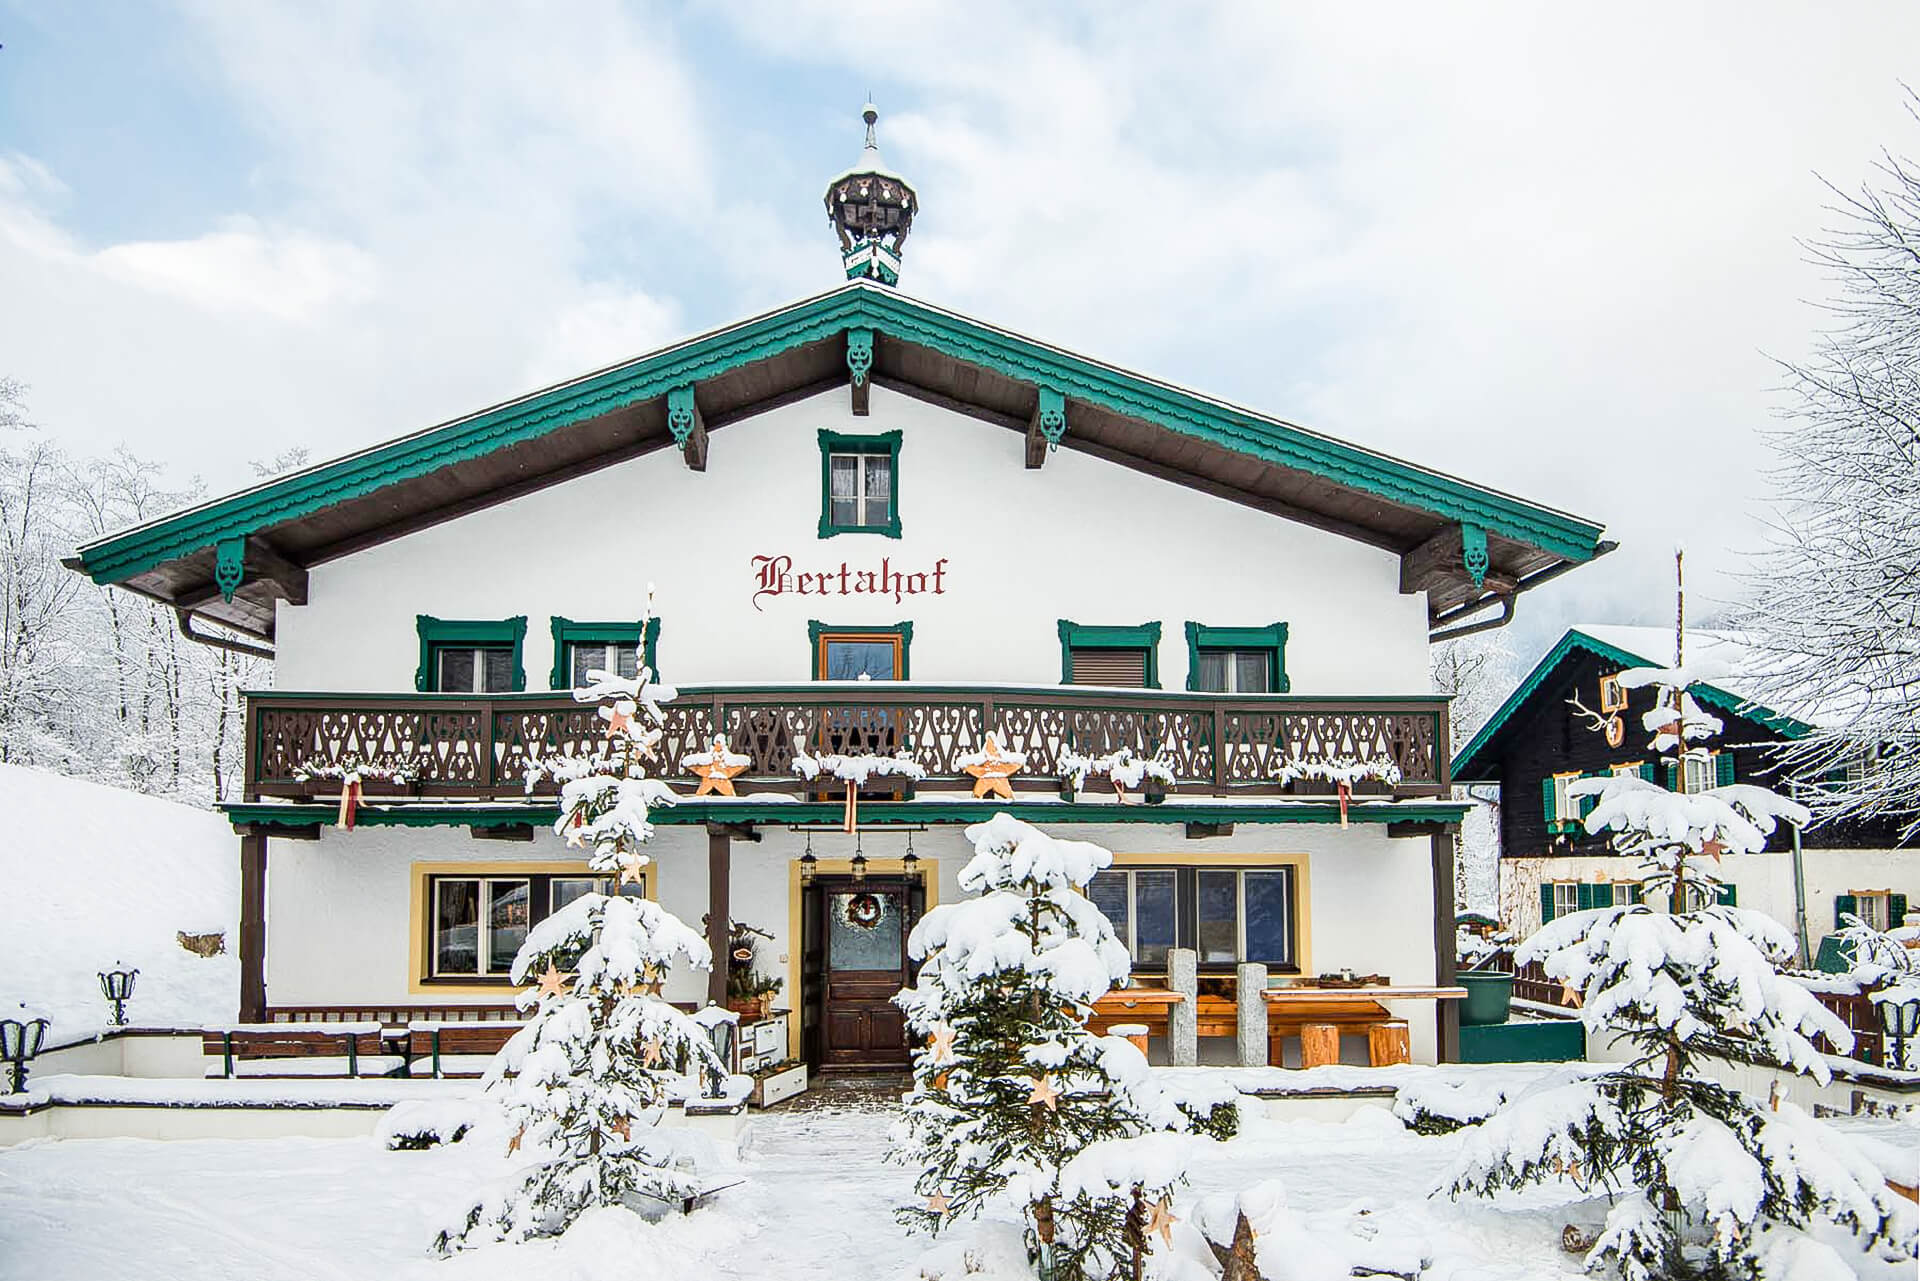 Restaurant Bertahof im Winter